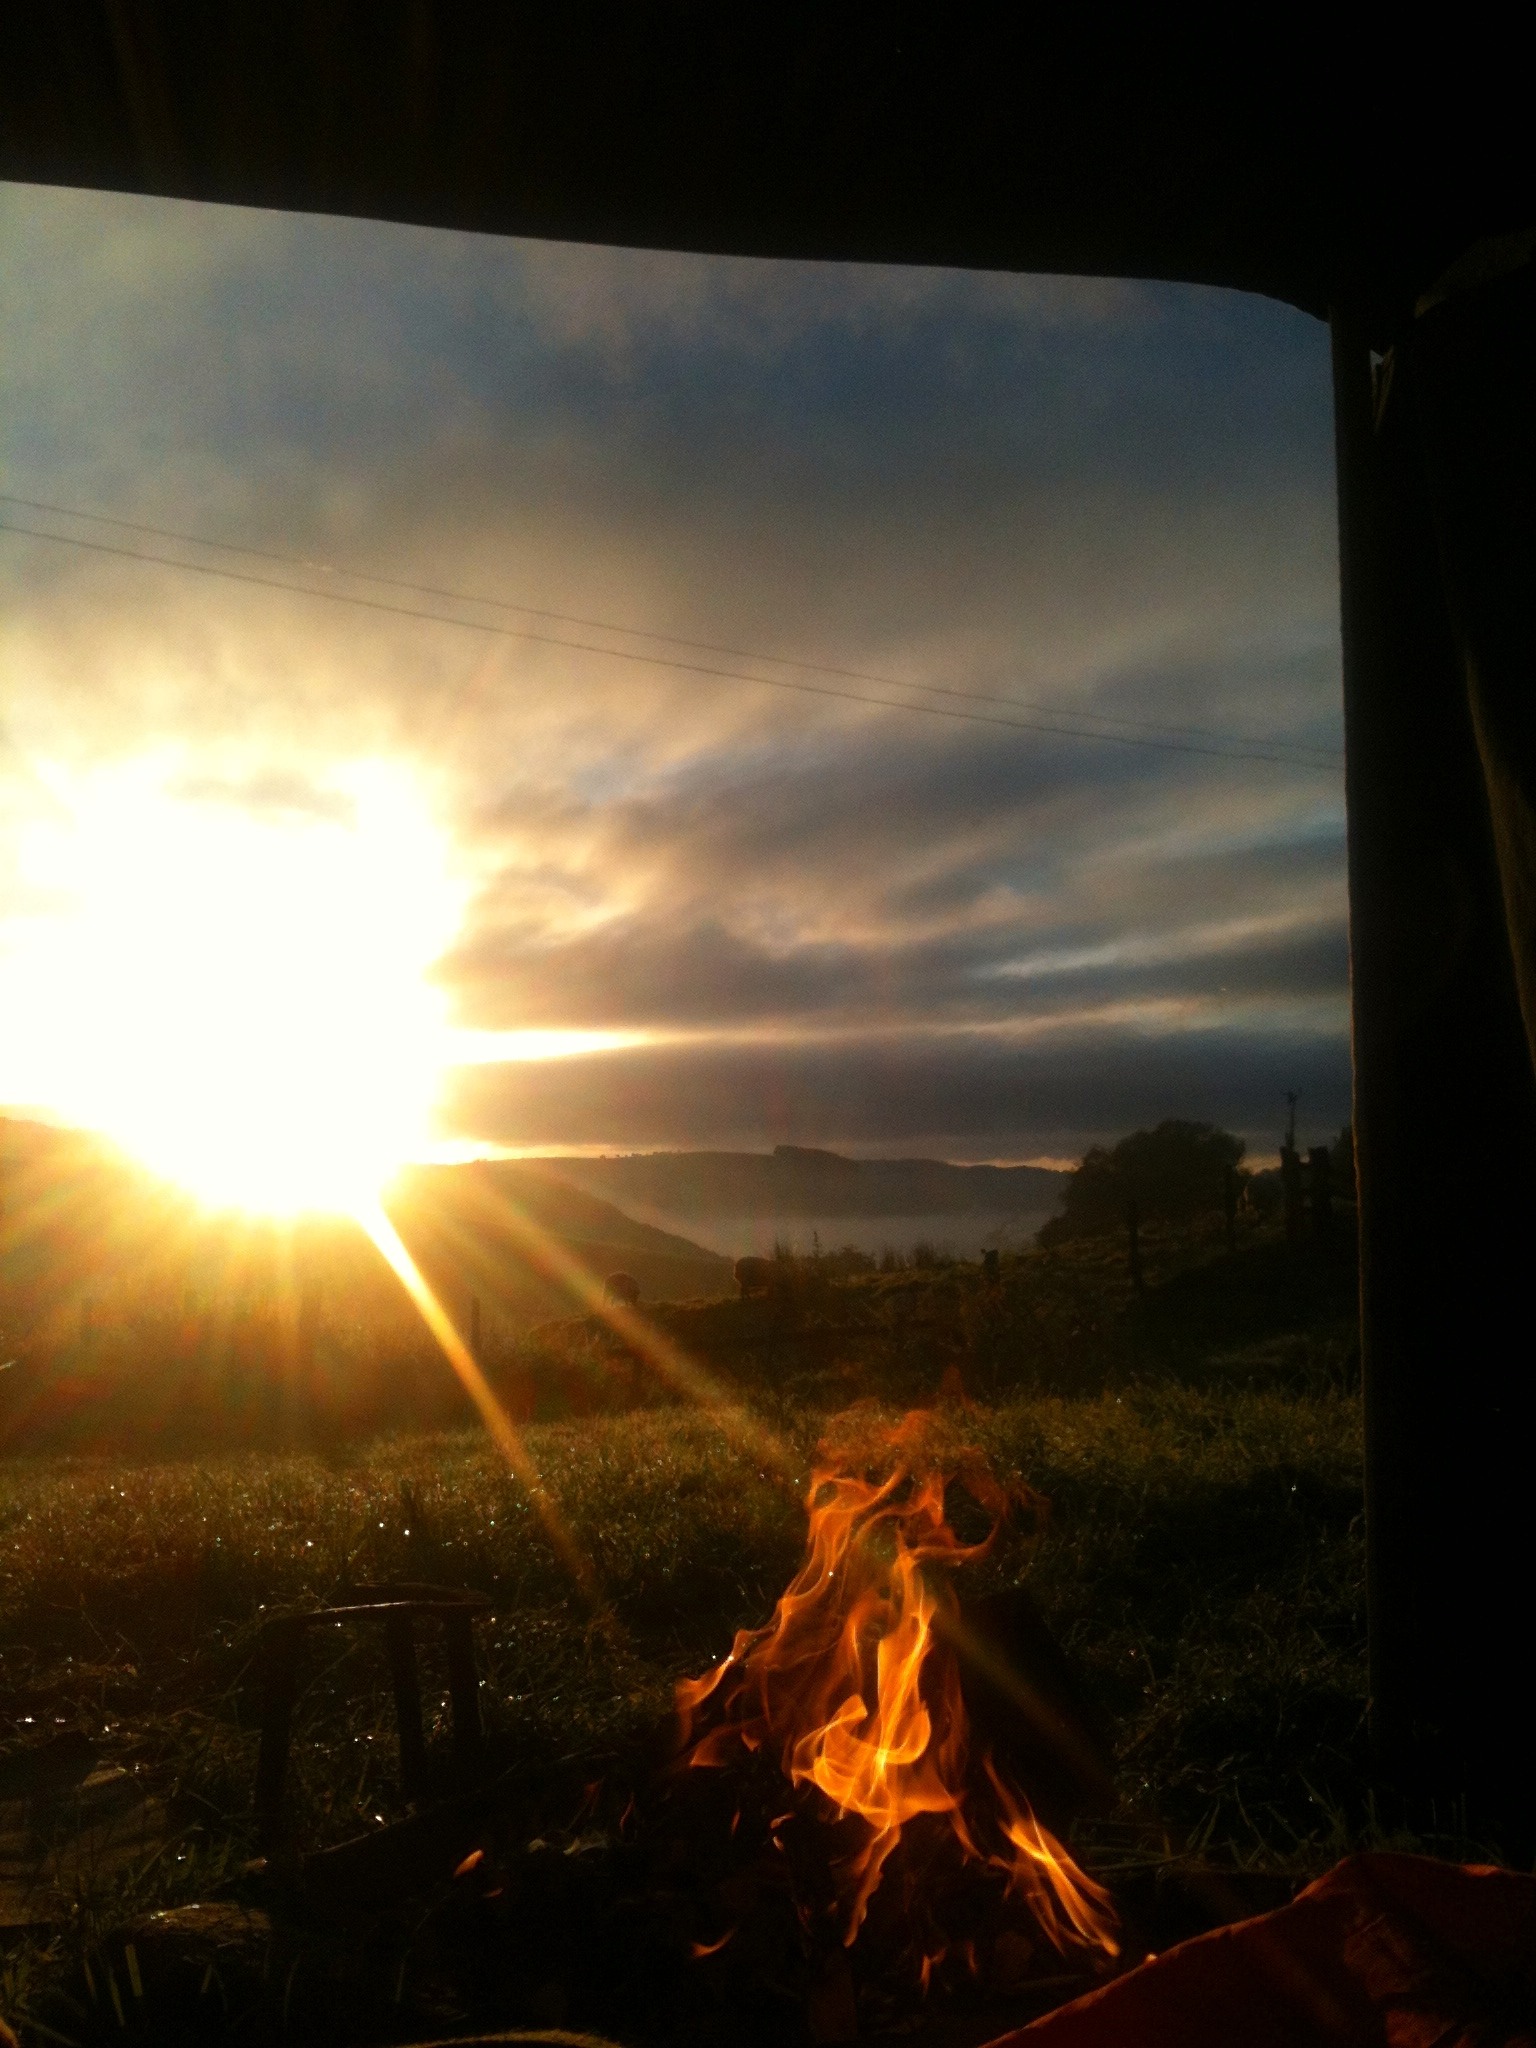 Sunrise and fire from the tent